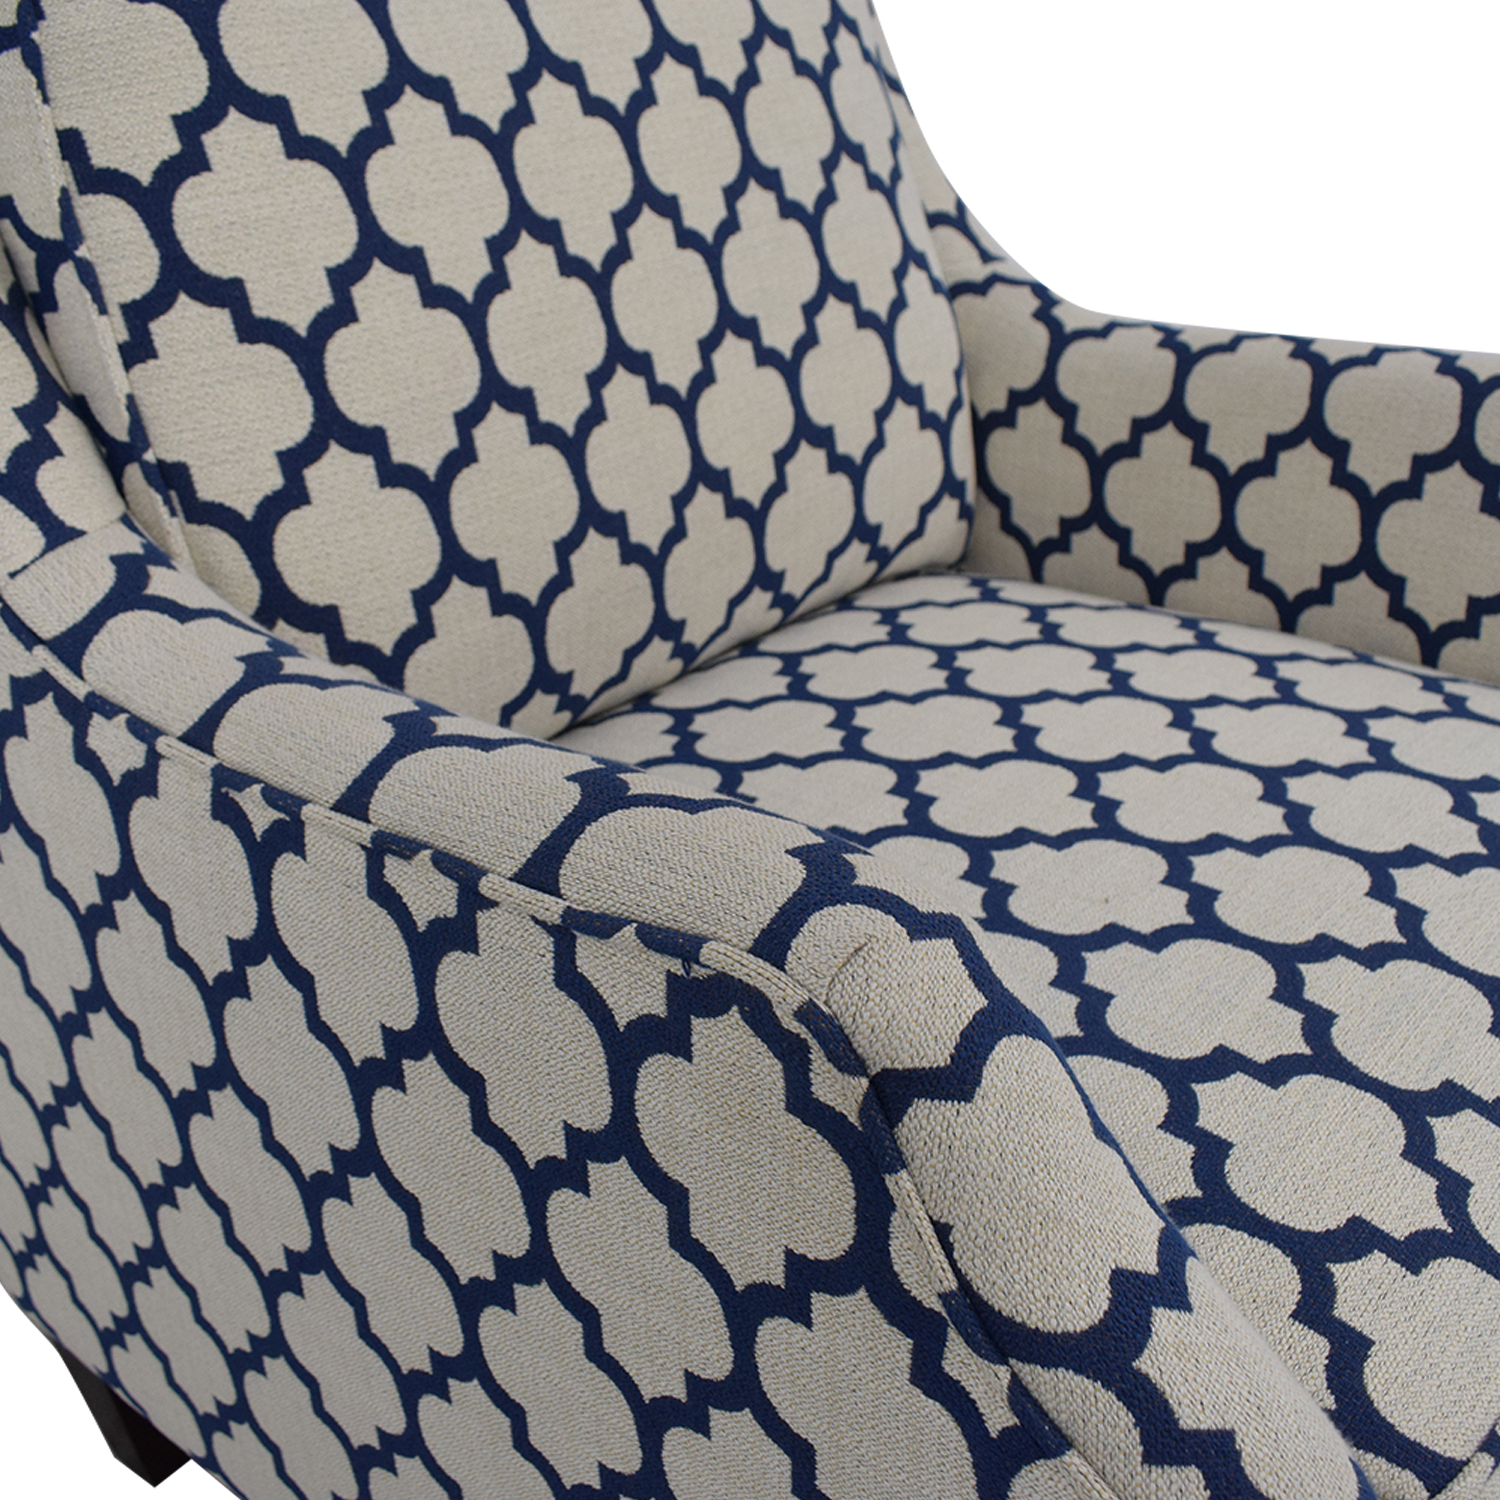 Braxton Culler Braxton Culler White & Blue Accent Chair nj